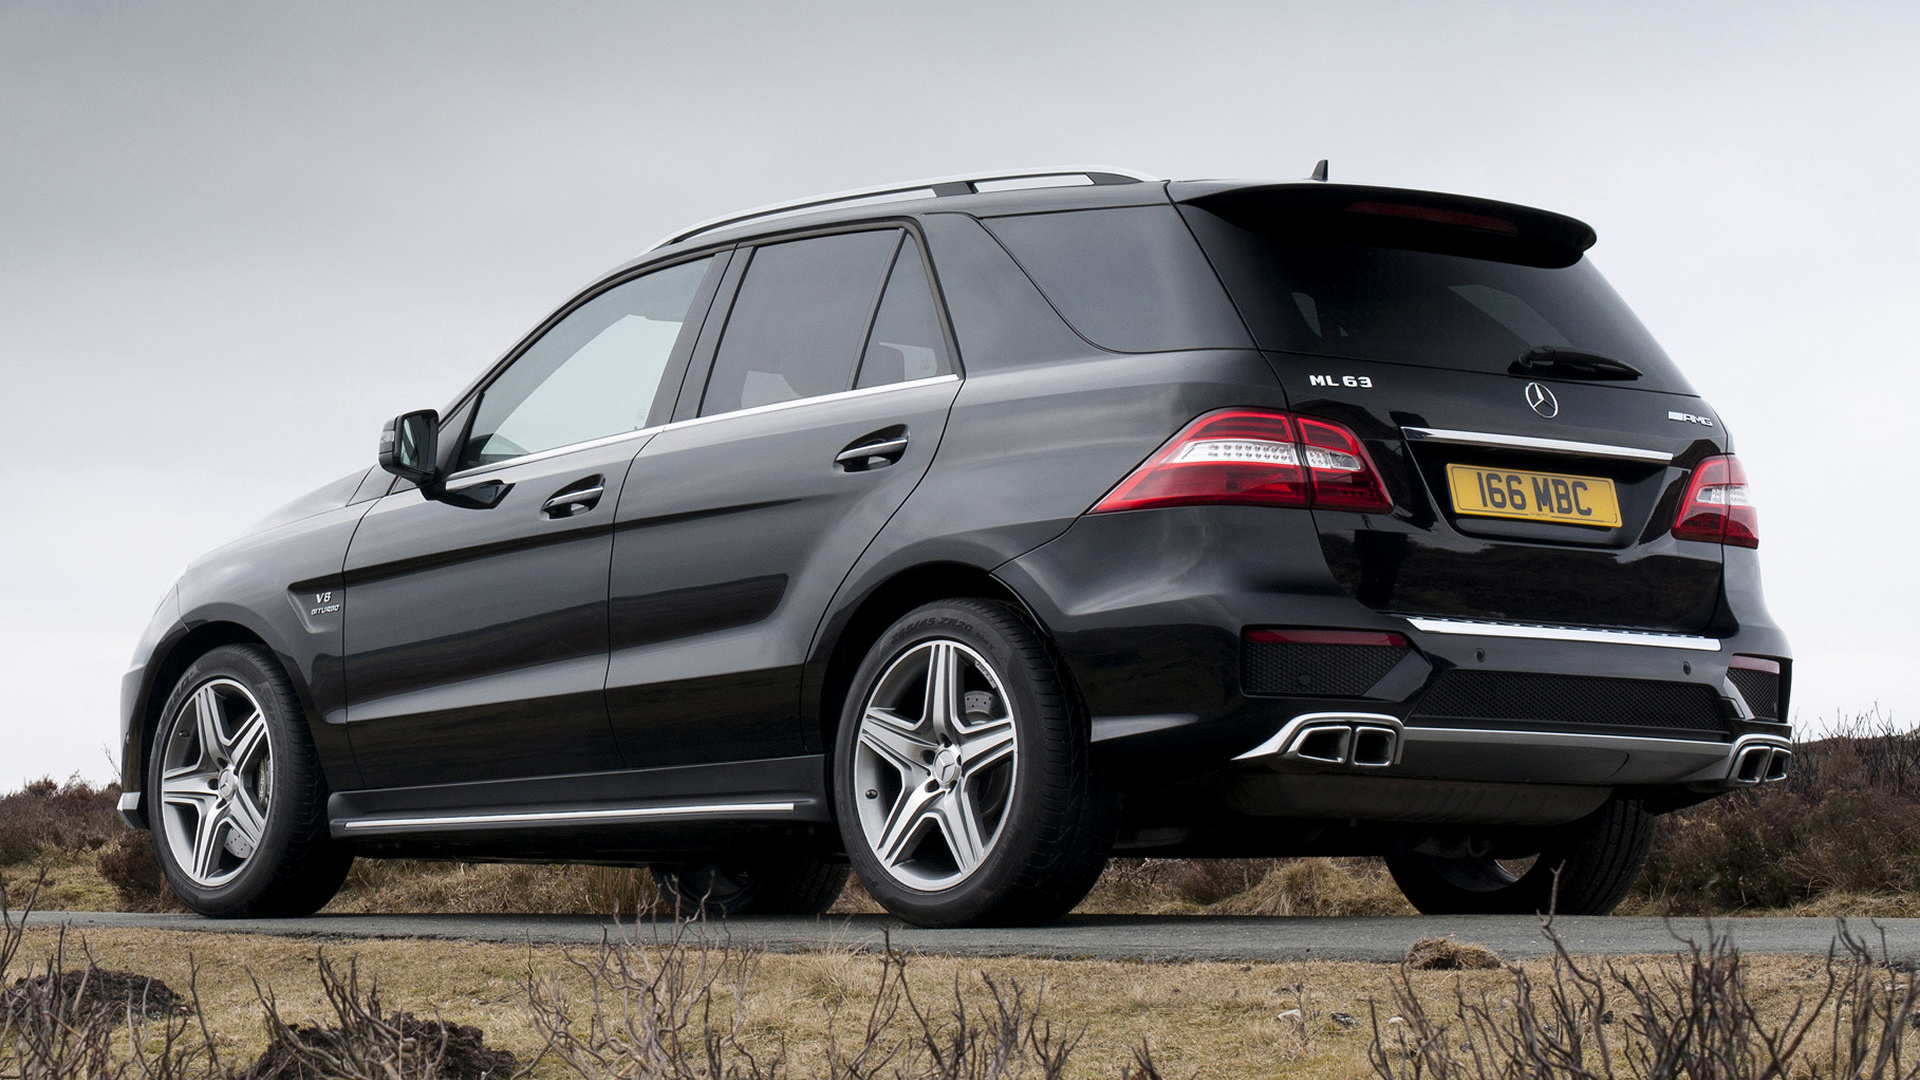 mercedes benz ml 63 amg 2012 uk wallpapers and hd images car pixel. Black Bedroom Furniture Sets. Home Design Ideas